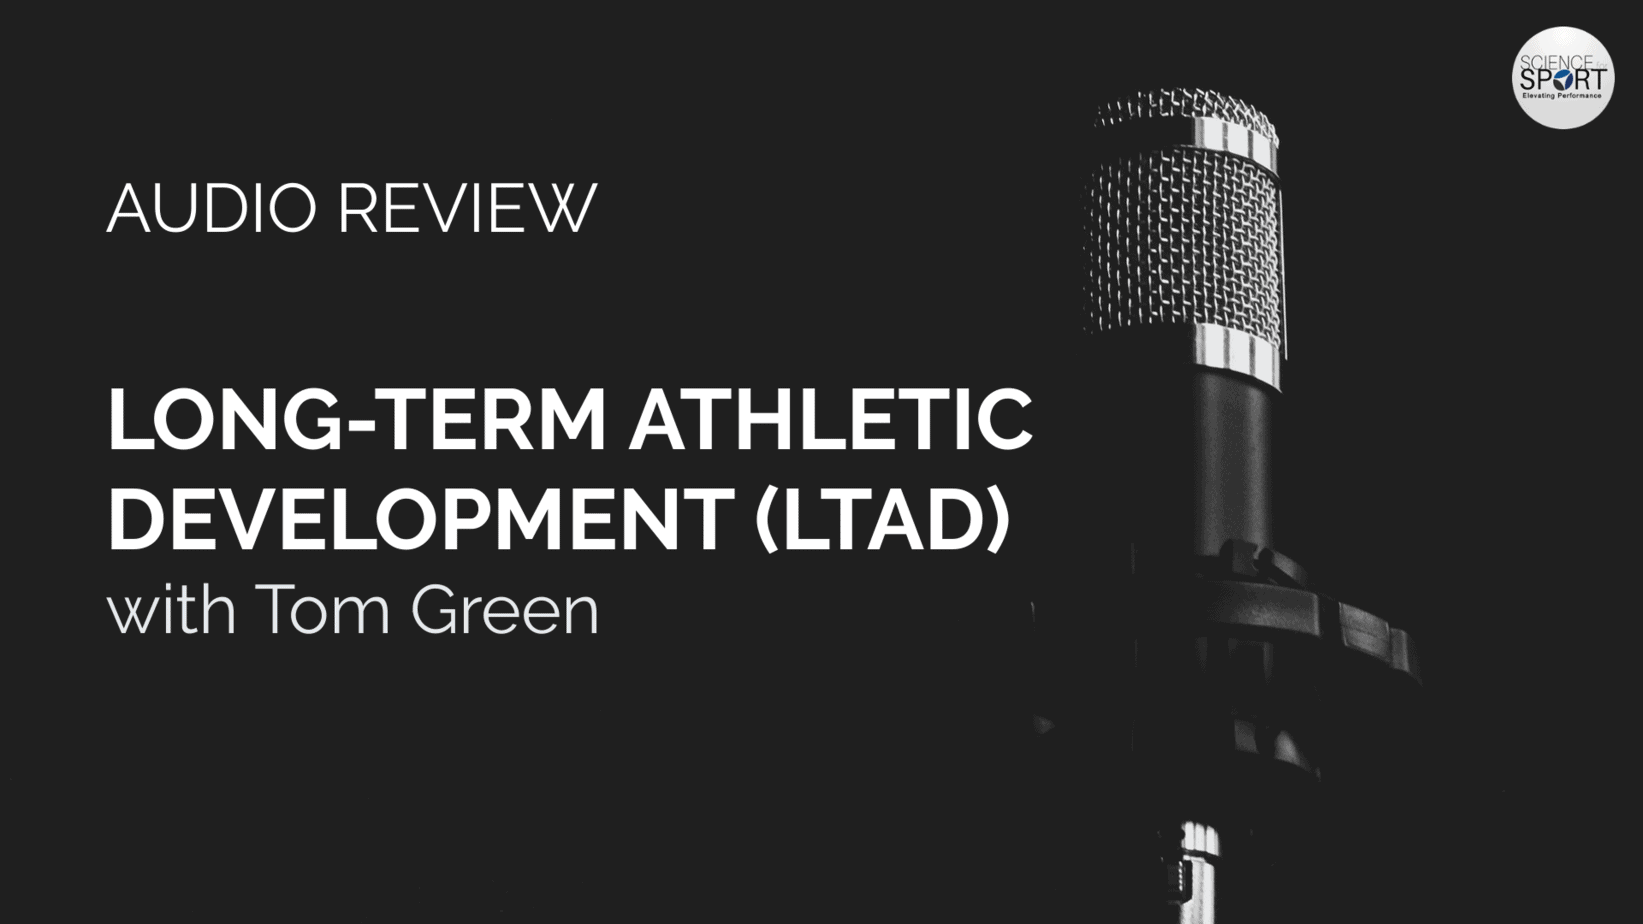 LTAD - Audio Review - Performance Digest - Science for Sport